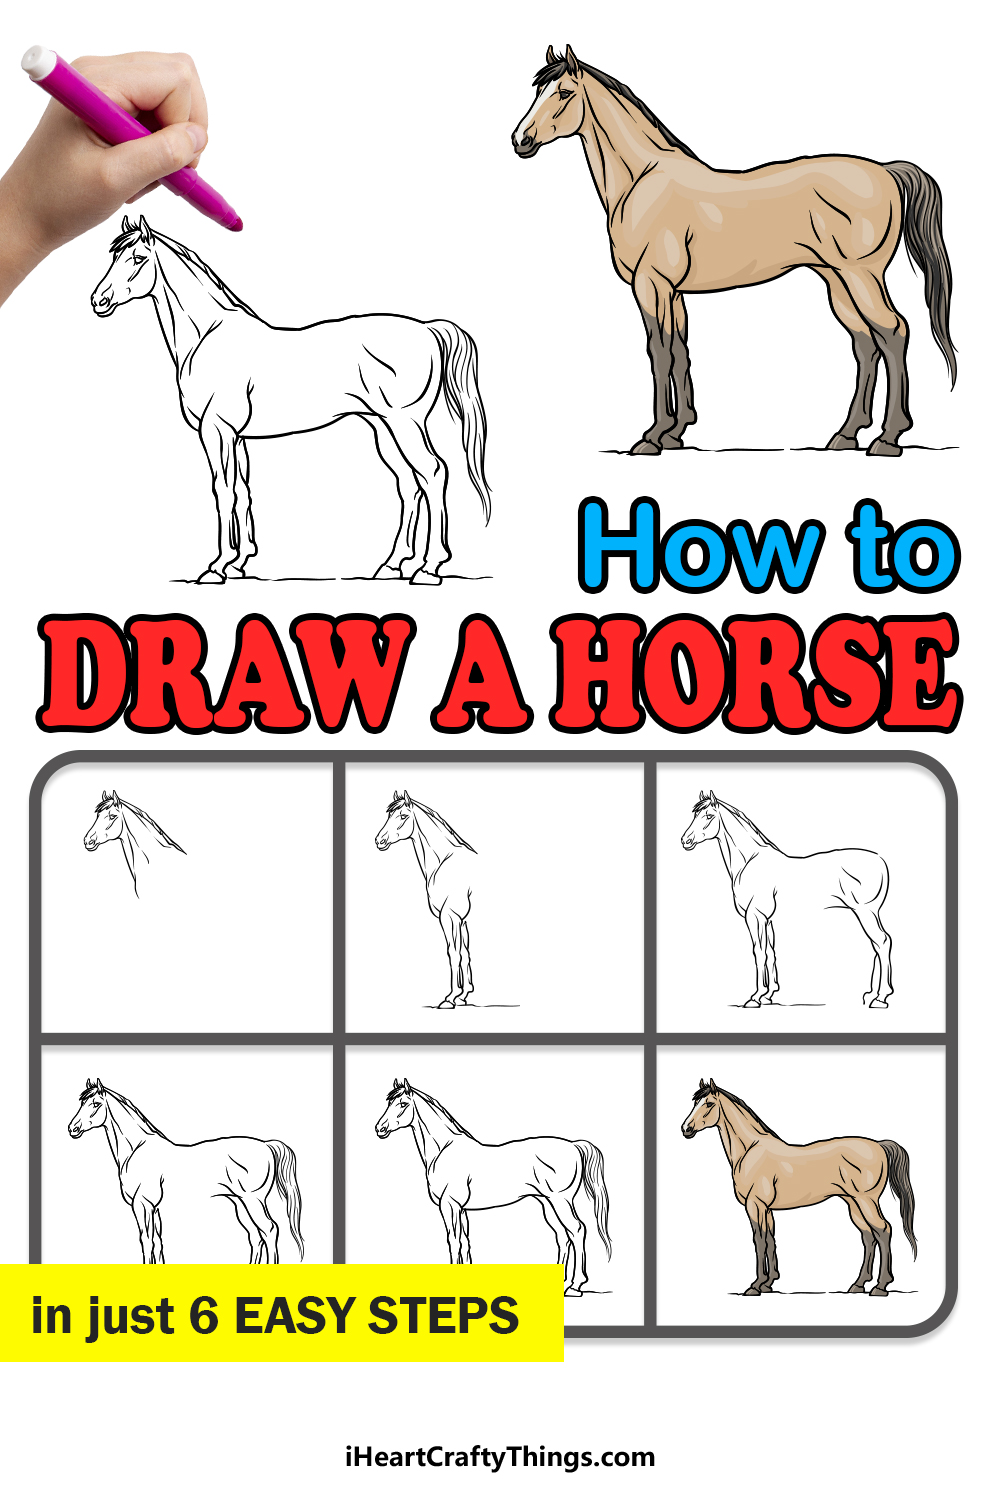 how to draw a horse in 6 easy steps